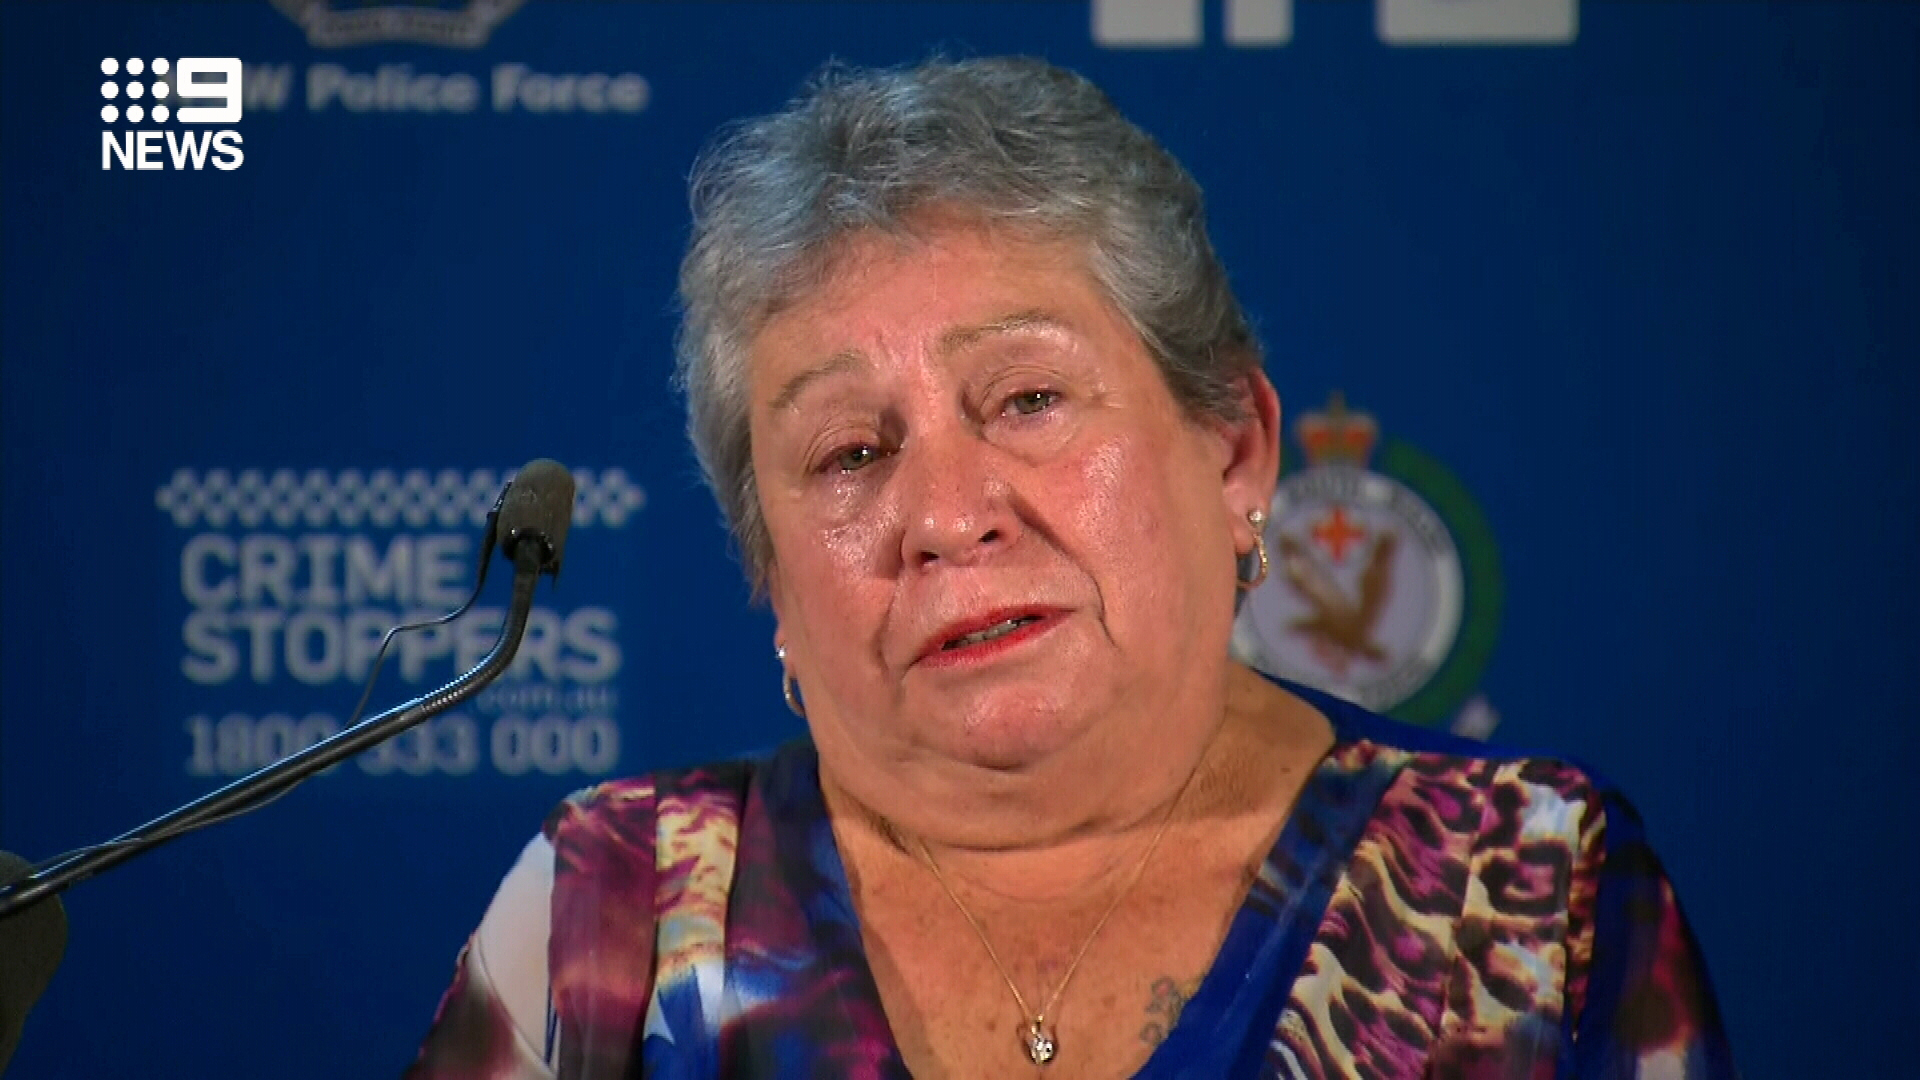 Lorraine Bright today begged someone to come forward with information that could finally help NSW Police catch Michelle's killer.